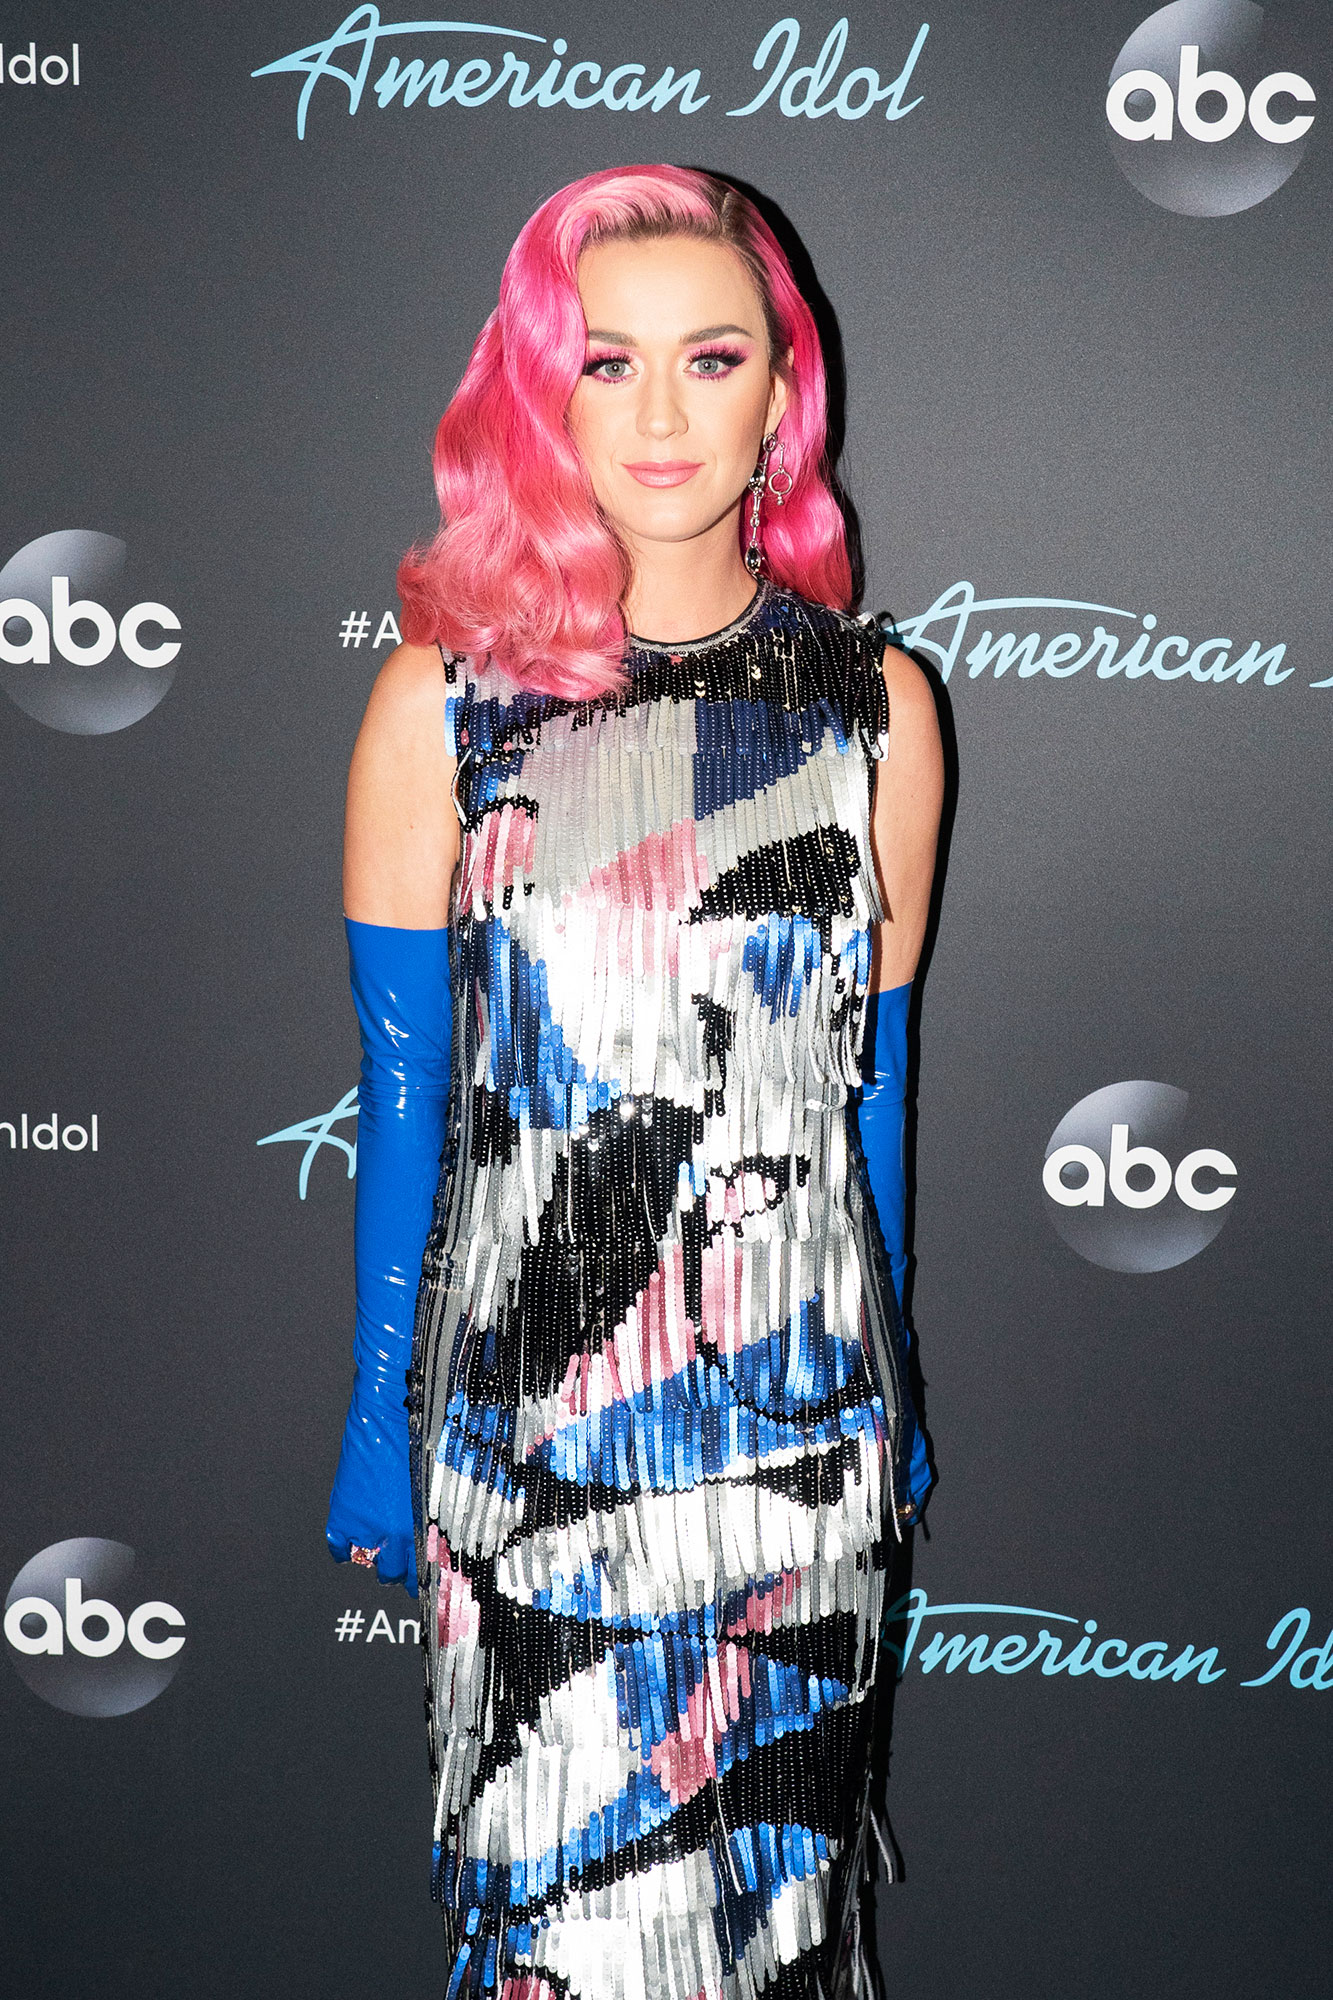 Katy Perry Go Bold in Brightly Colored Wigs - AMERICAN IDOL – Katy Perry